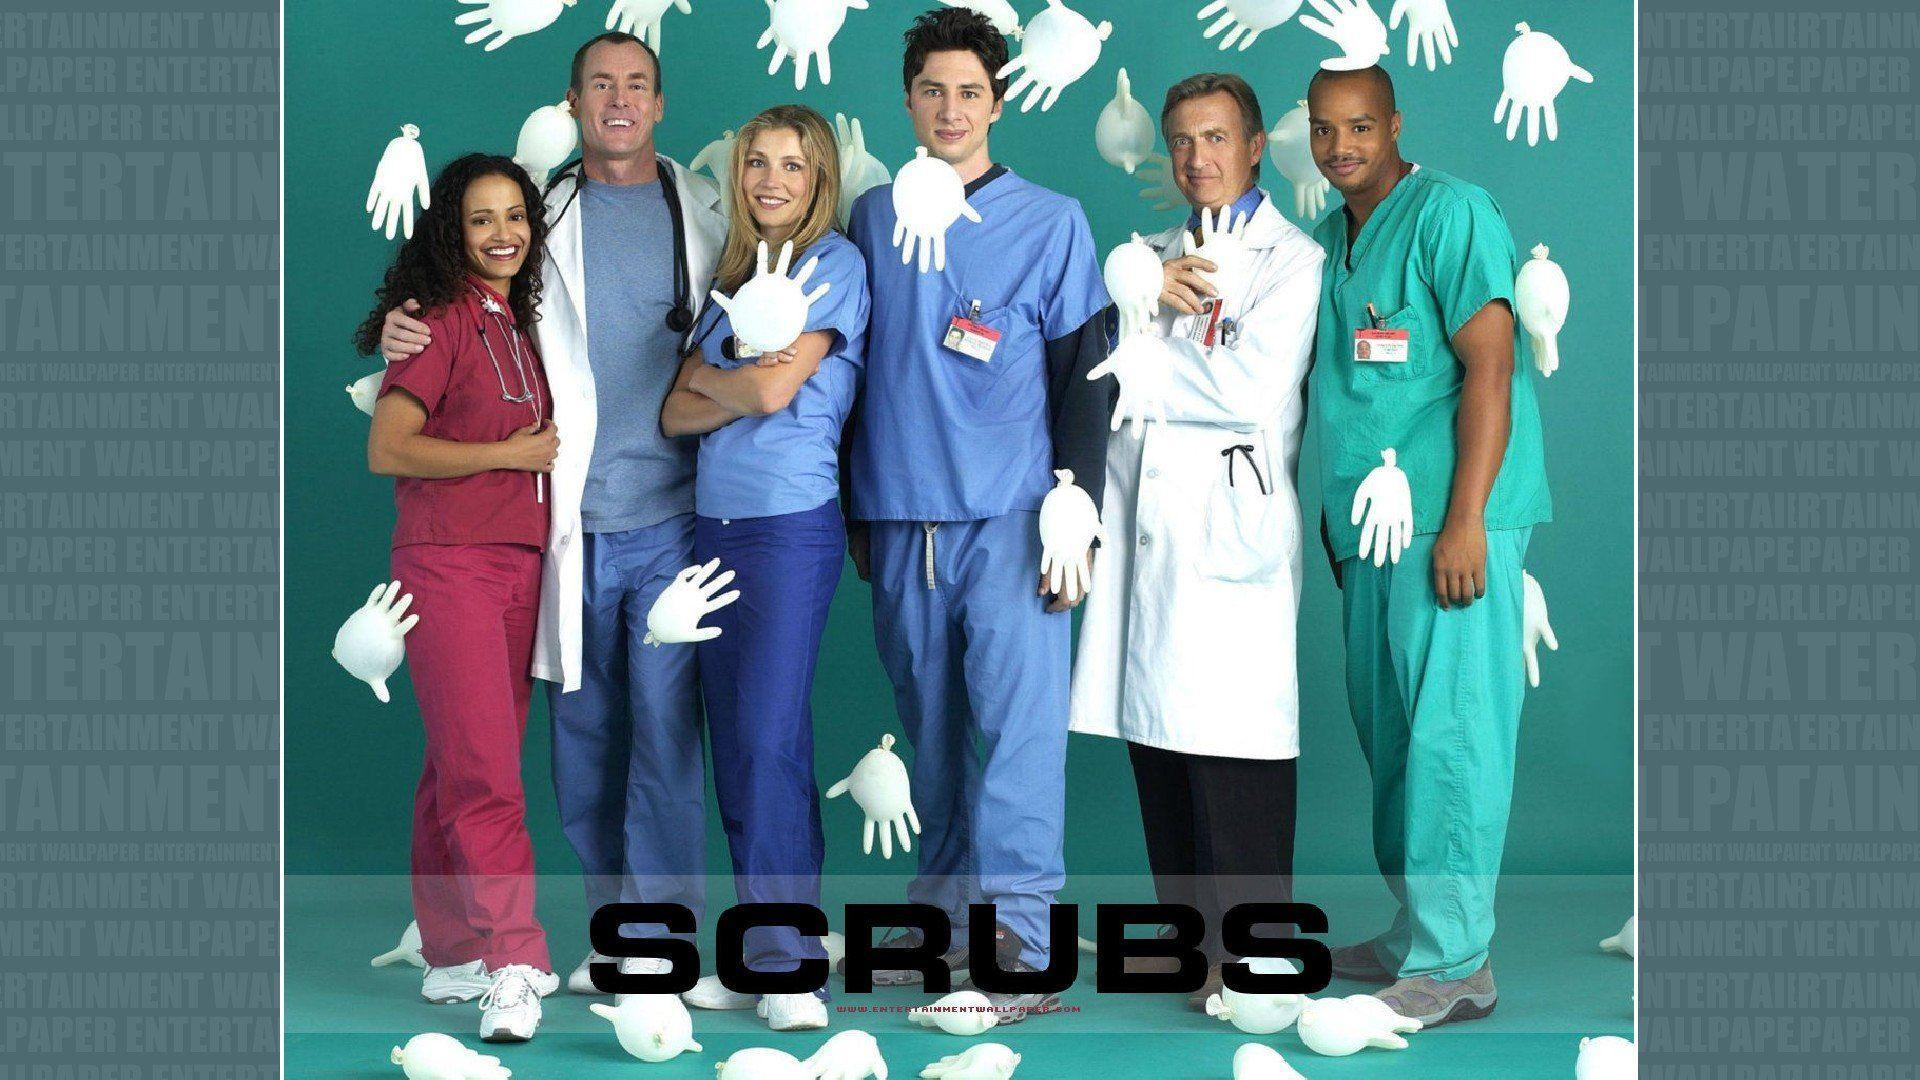 SCRUBS comedy drama series medical